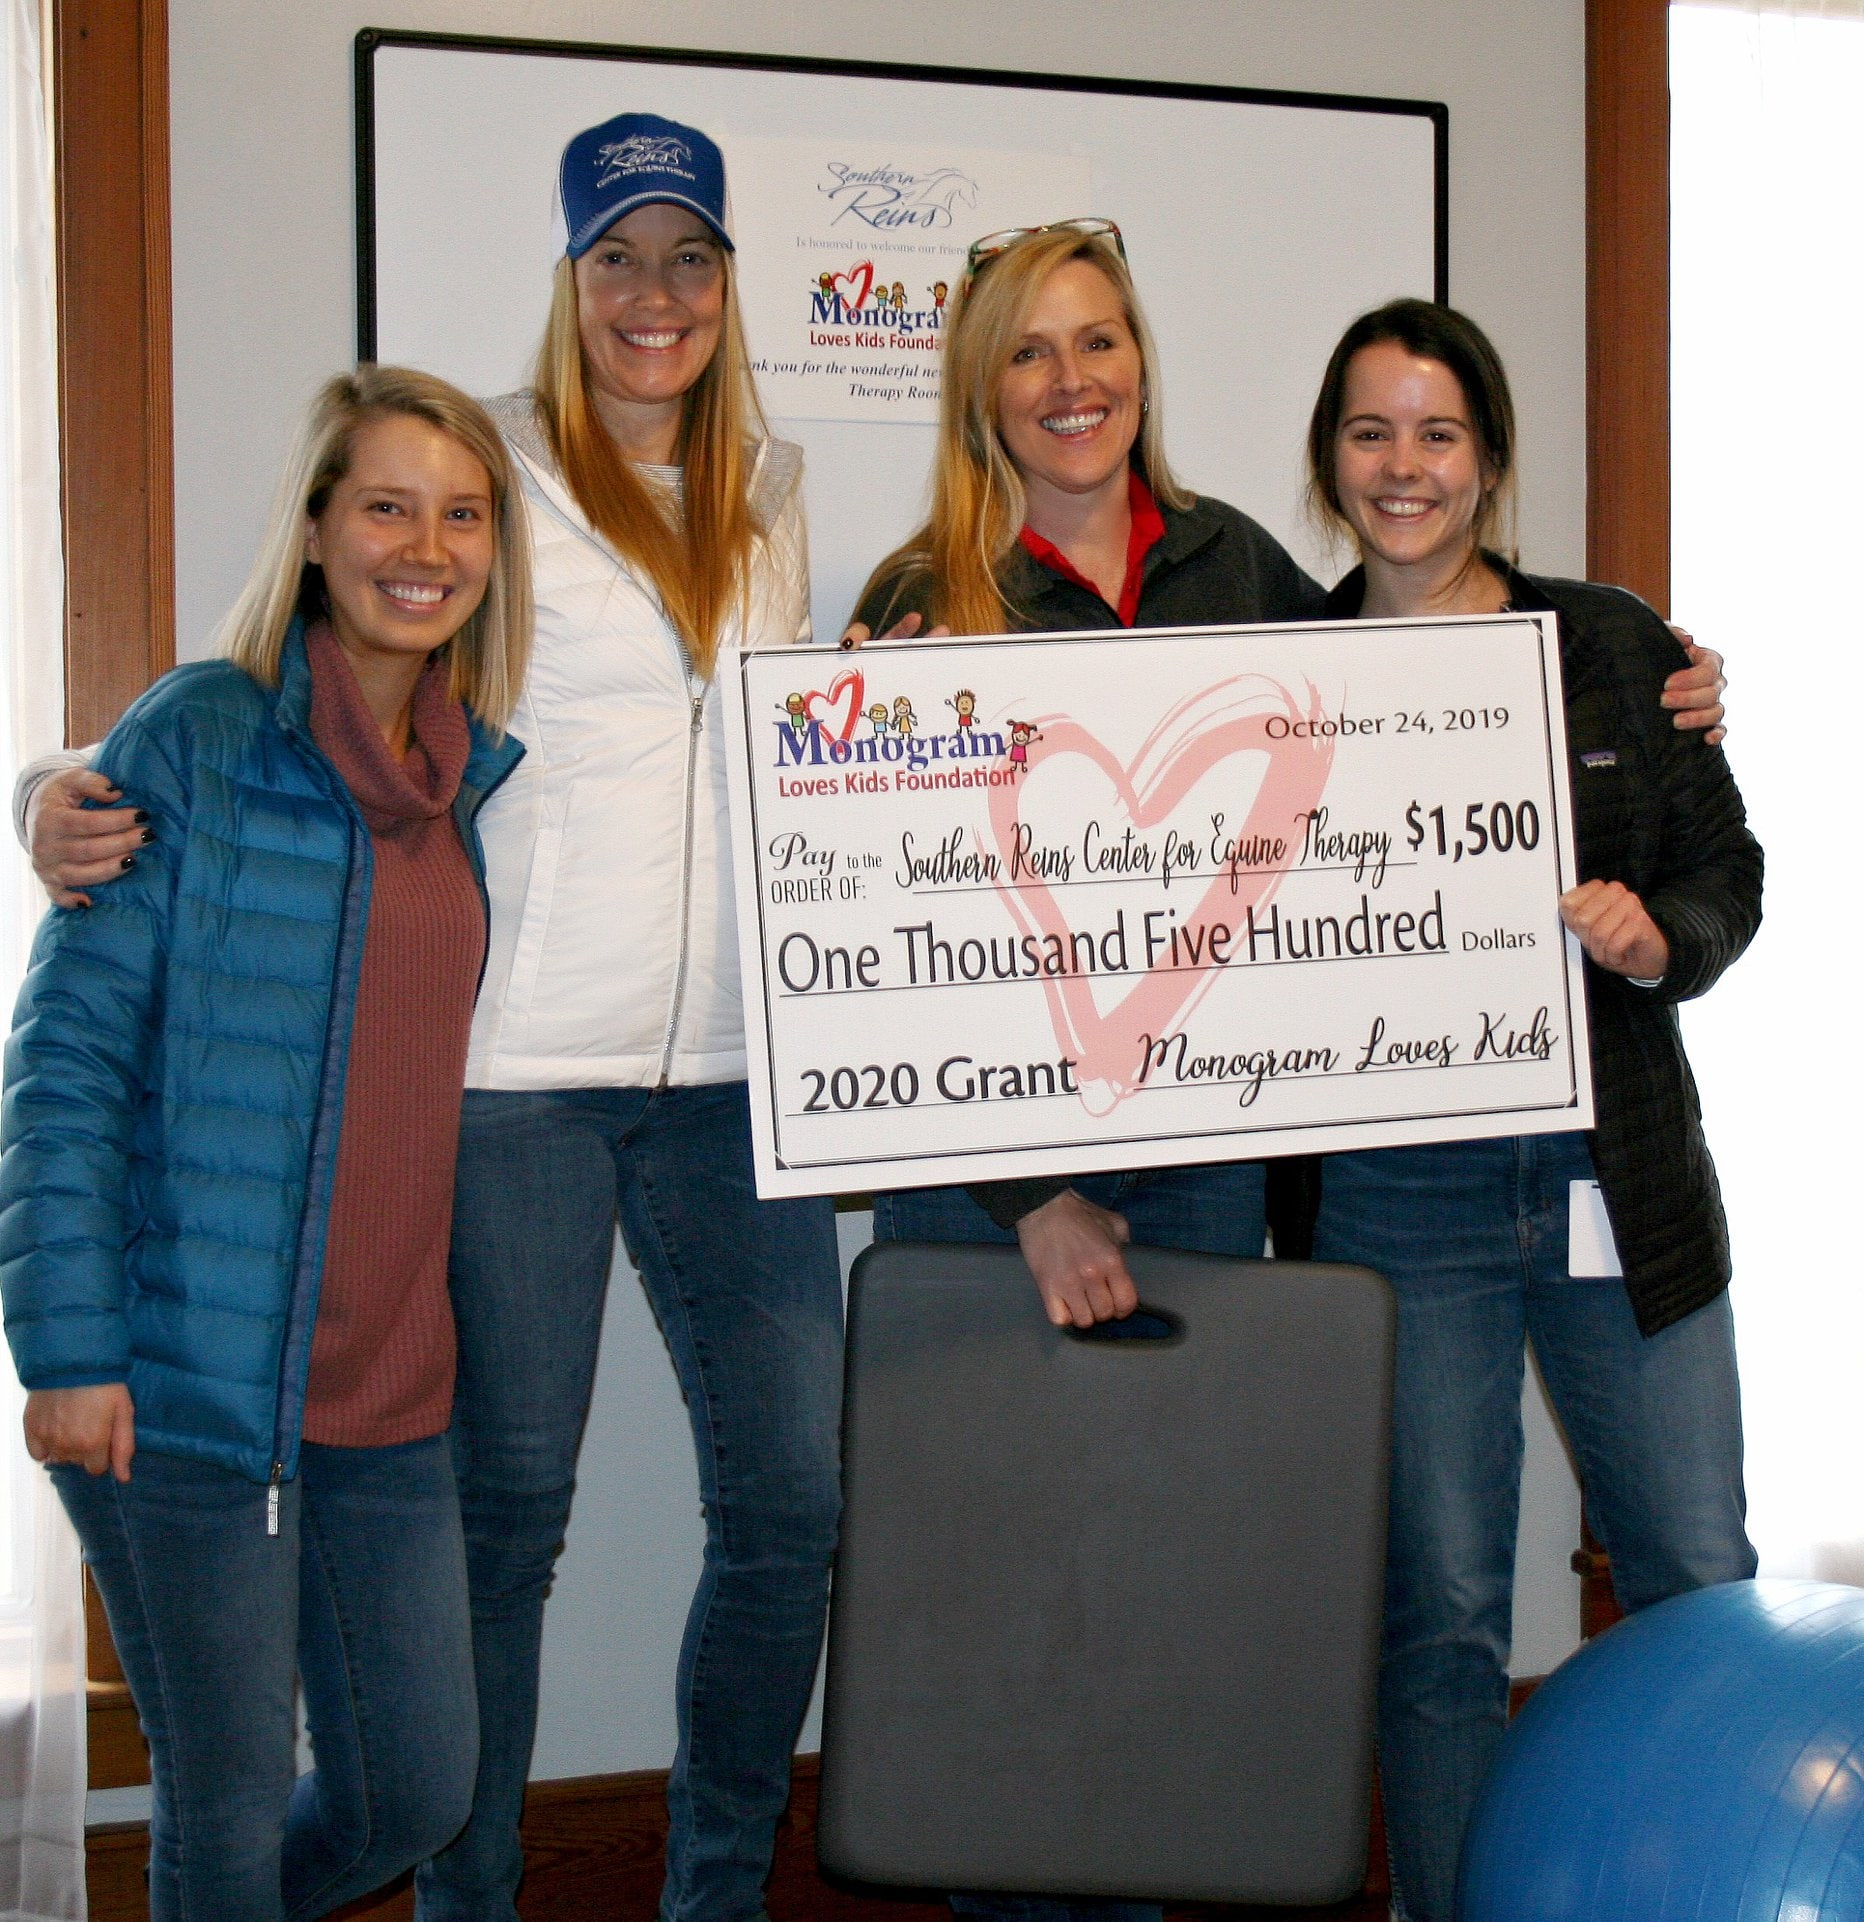 employees from Southern Reins Center for Equine Therapy hold a novelty check for a $1,500 donation from the Monogram Loves Kids Foundation